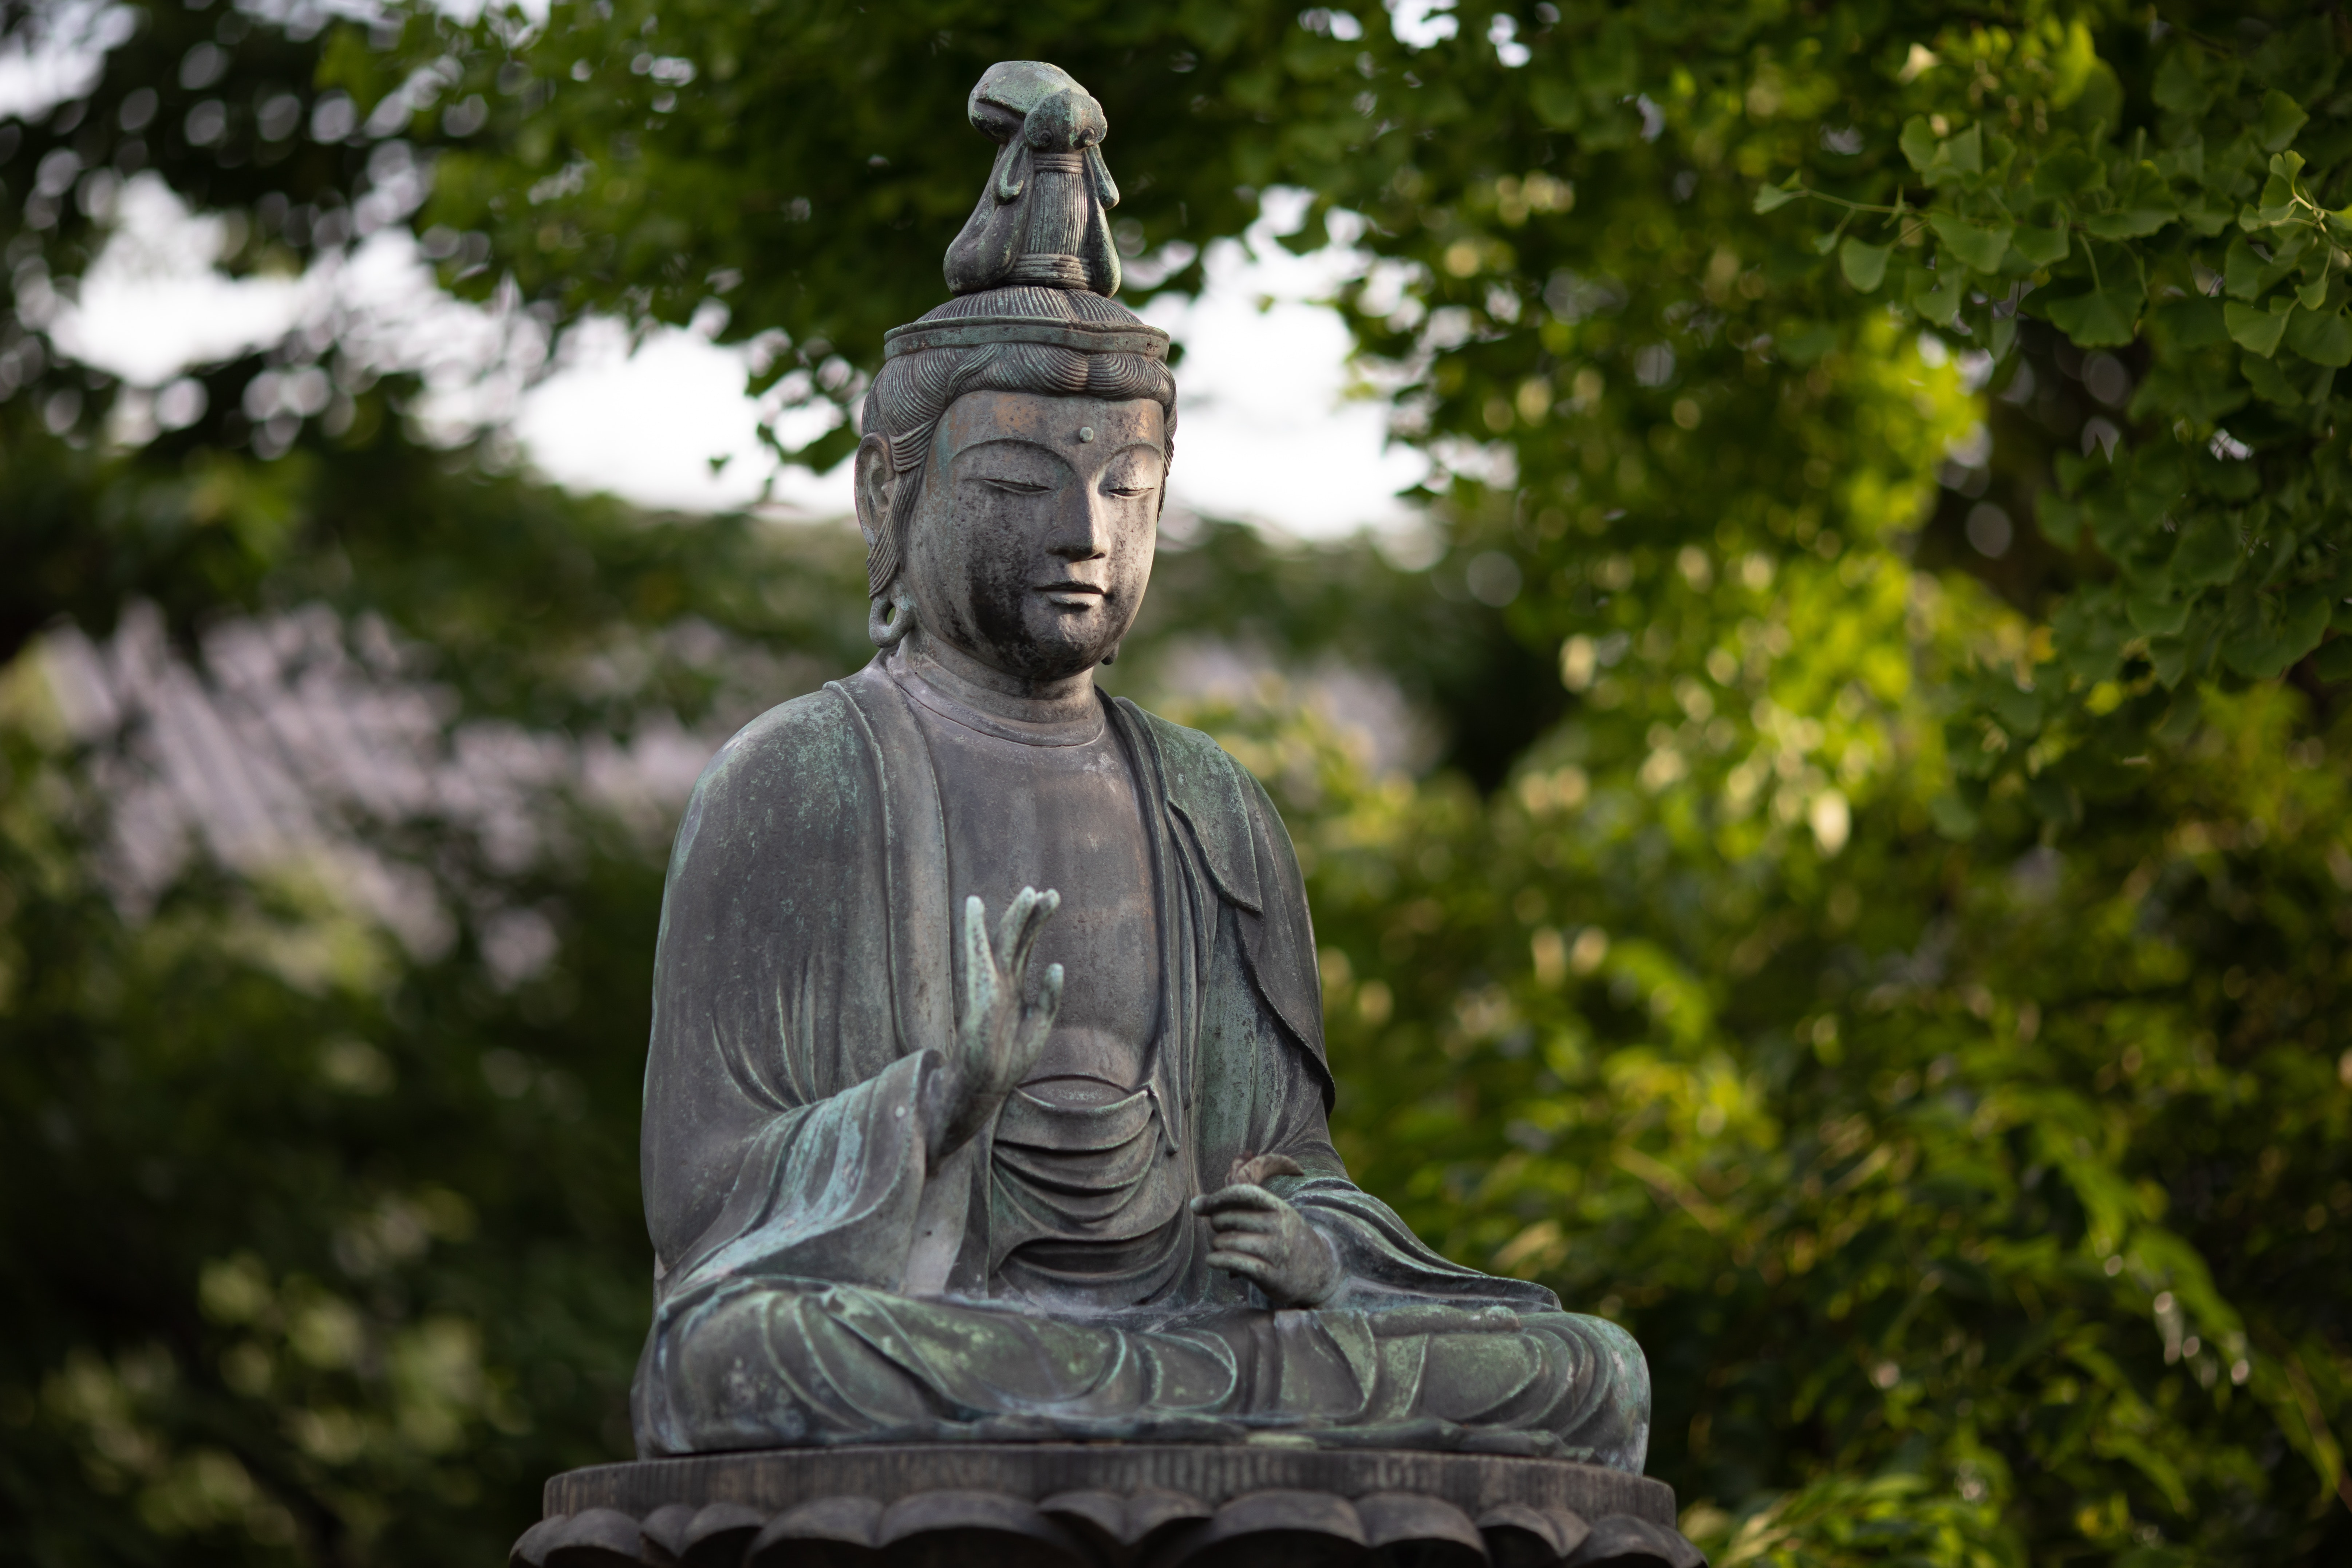 Photograph of an old Buddha statue outdoors